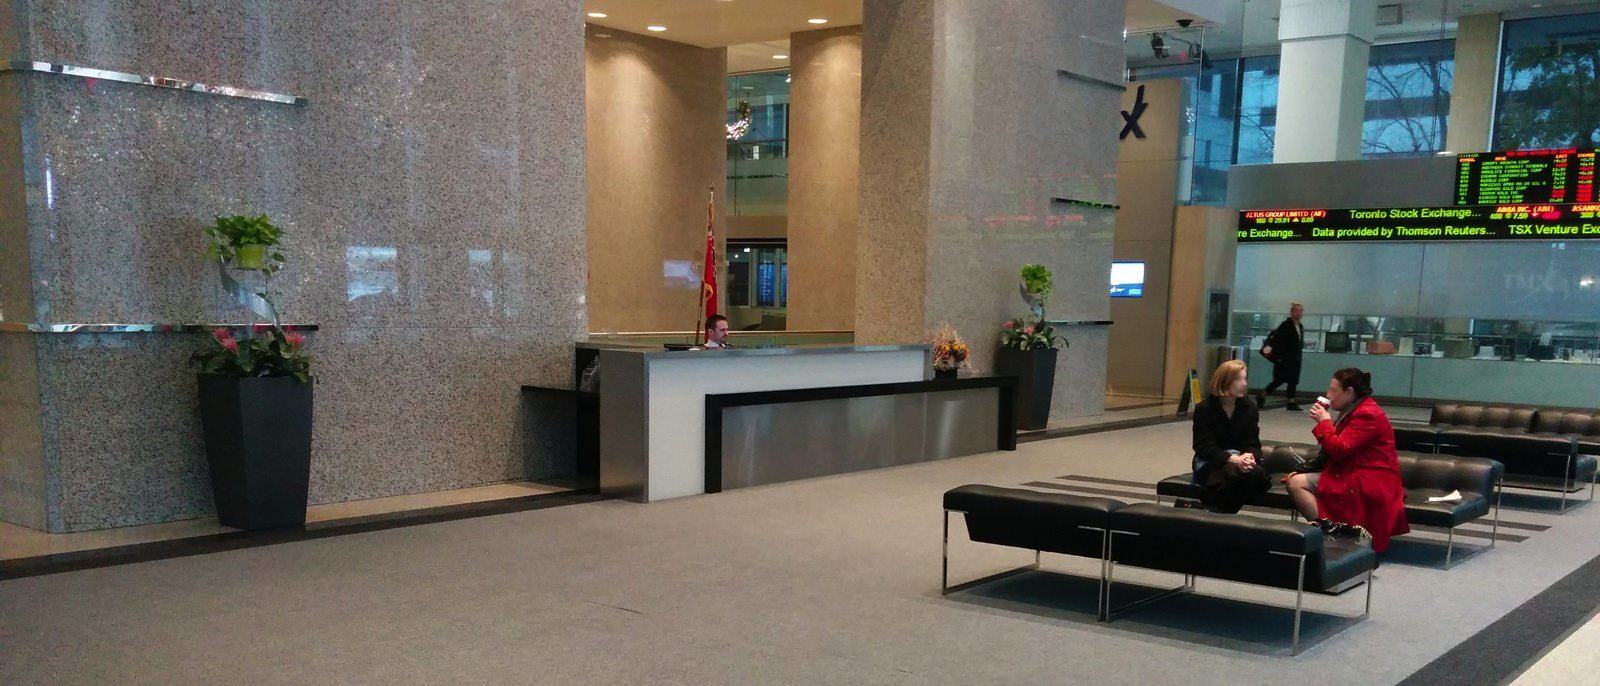 Two people sitting on couches that are located in the lobby of a large building that is likely a hotel.